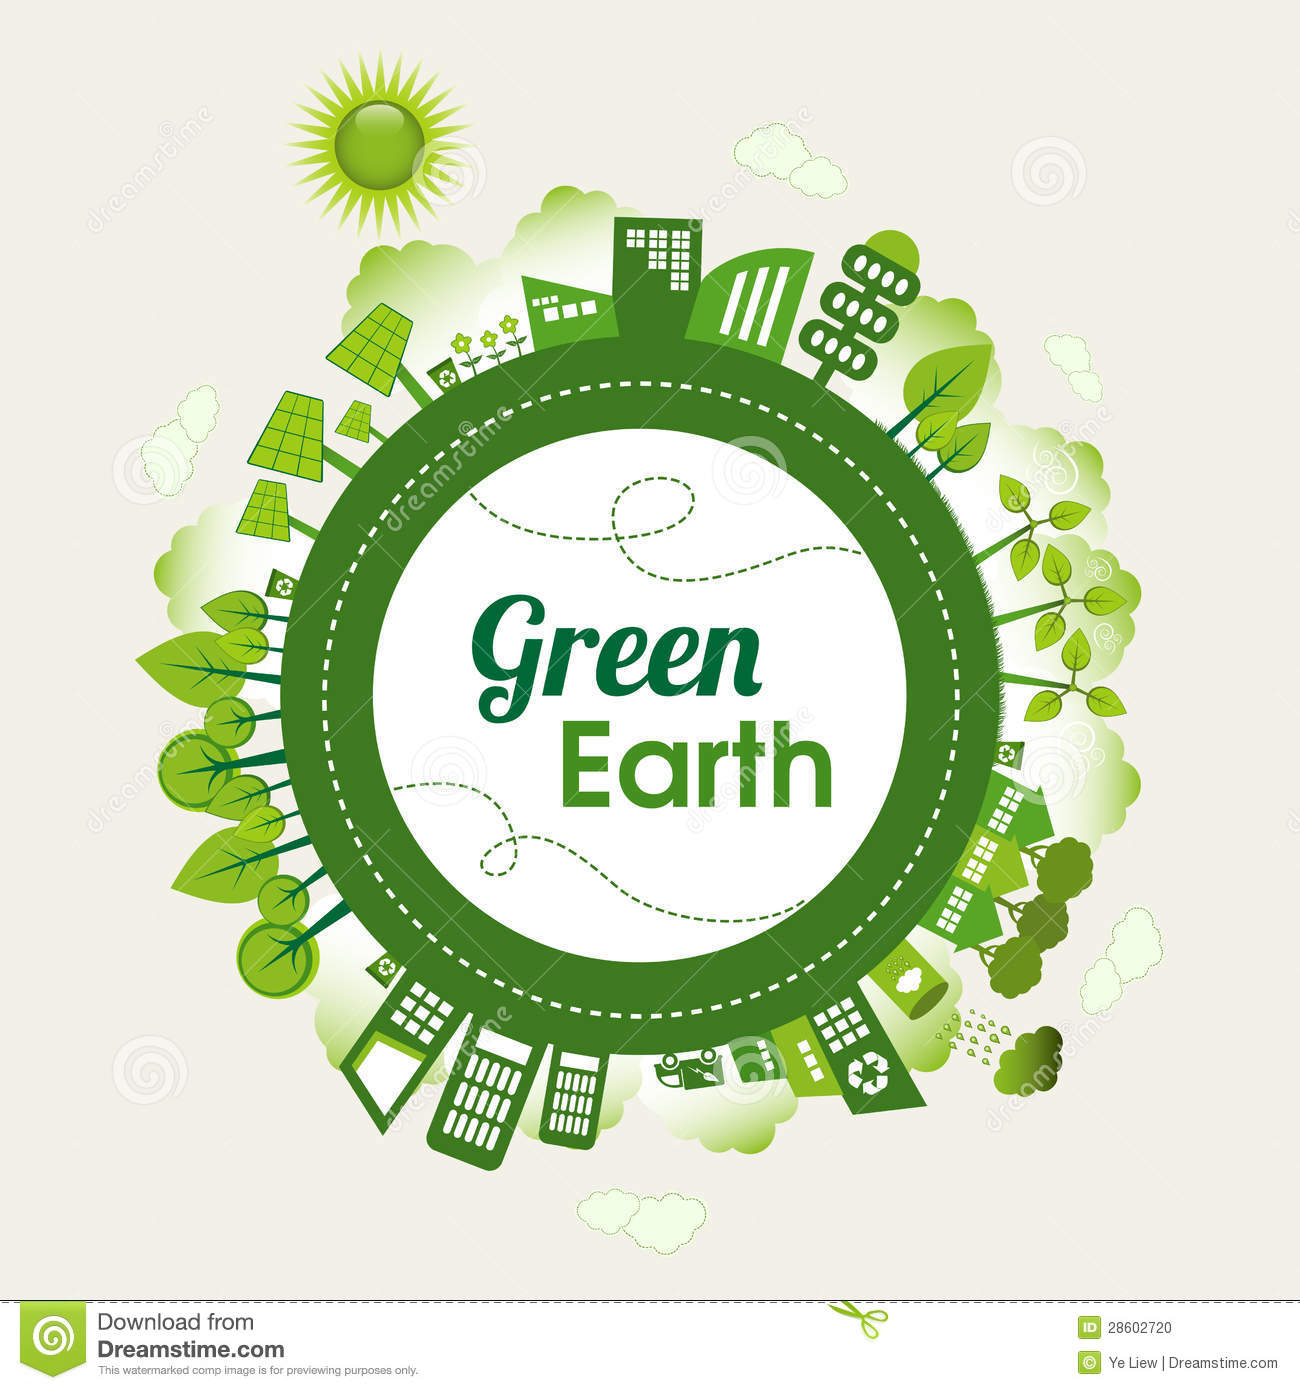 Tea party background royalty free stock photo image 28839215 - Green Planet Earth Concept Sustainable Green Living Around The Globe